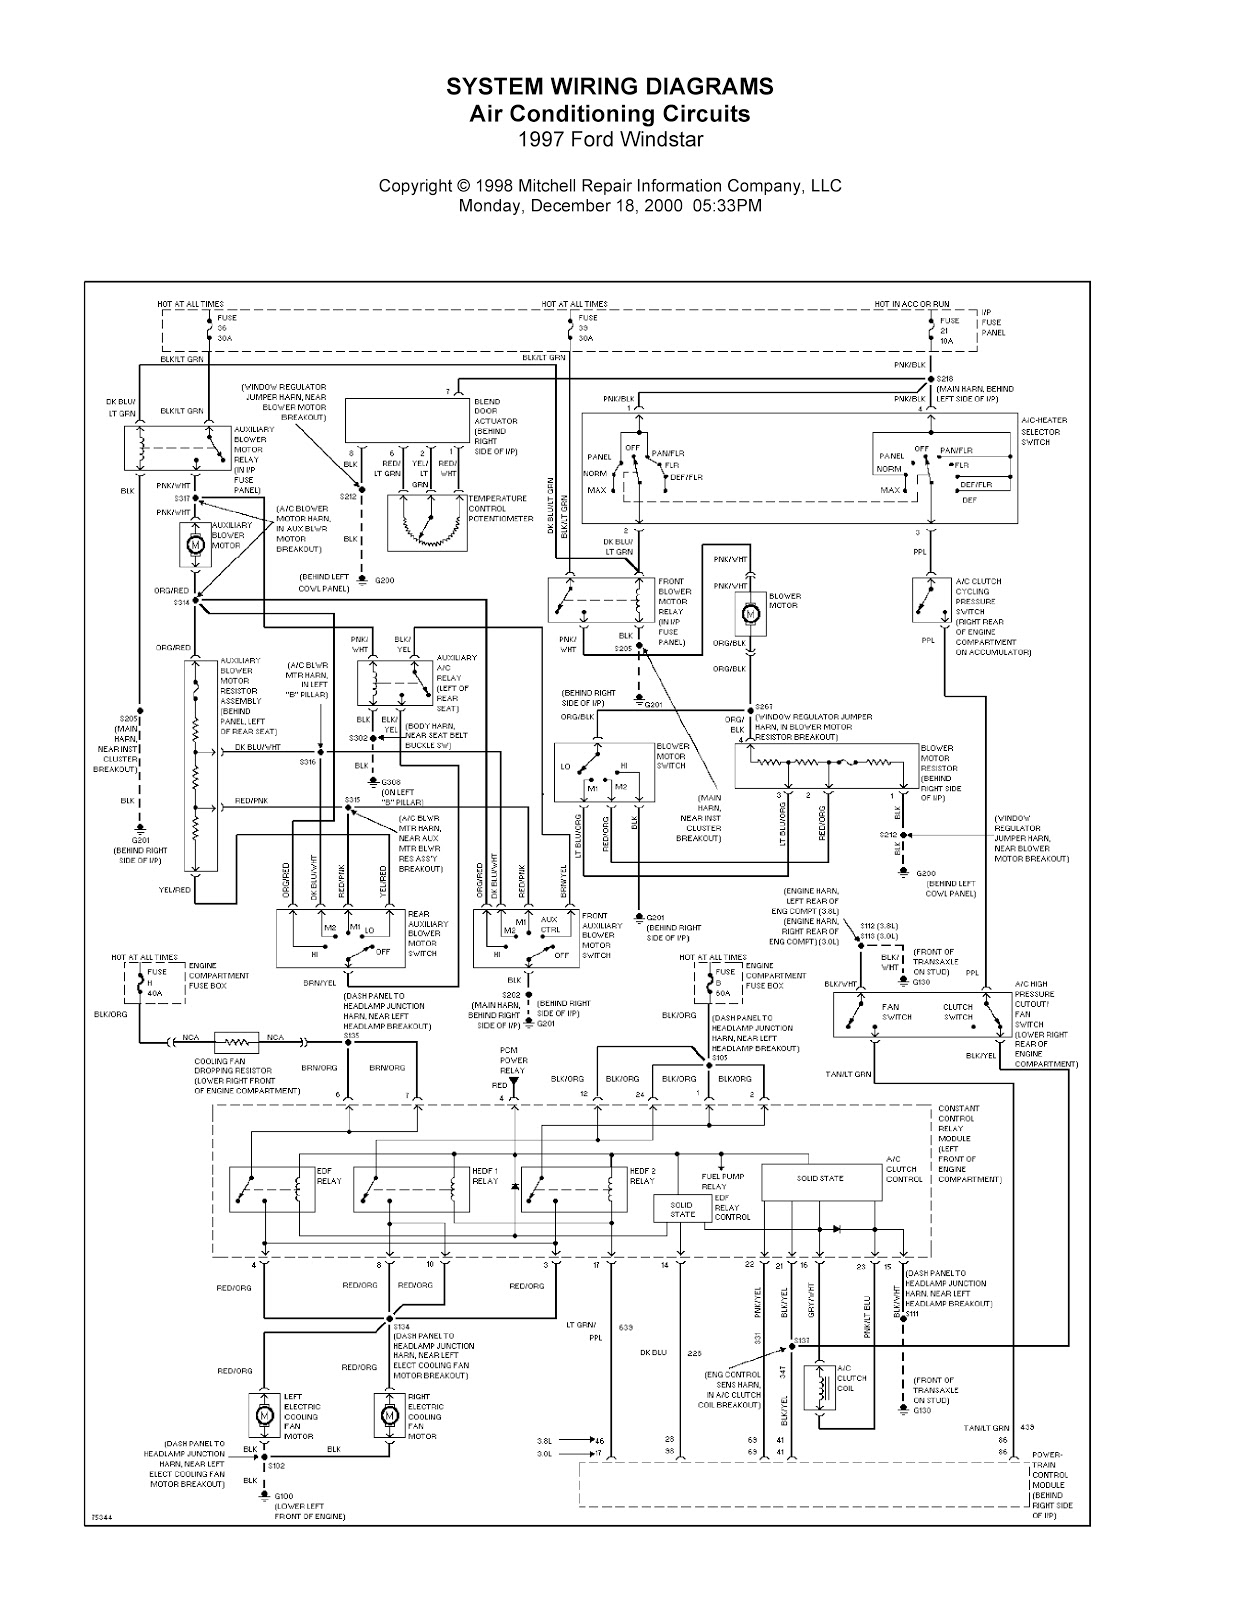 0001 1997 ford windstar complete system wiring diagrams wiring system wiring diagrams at soozxer.org